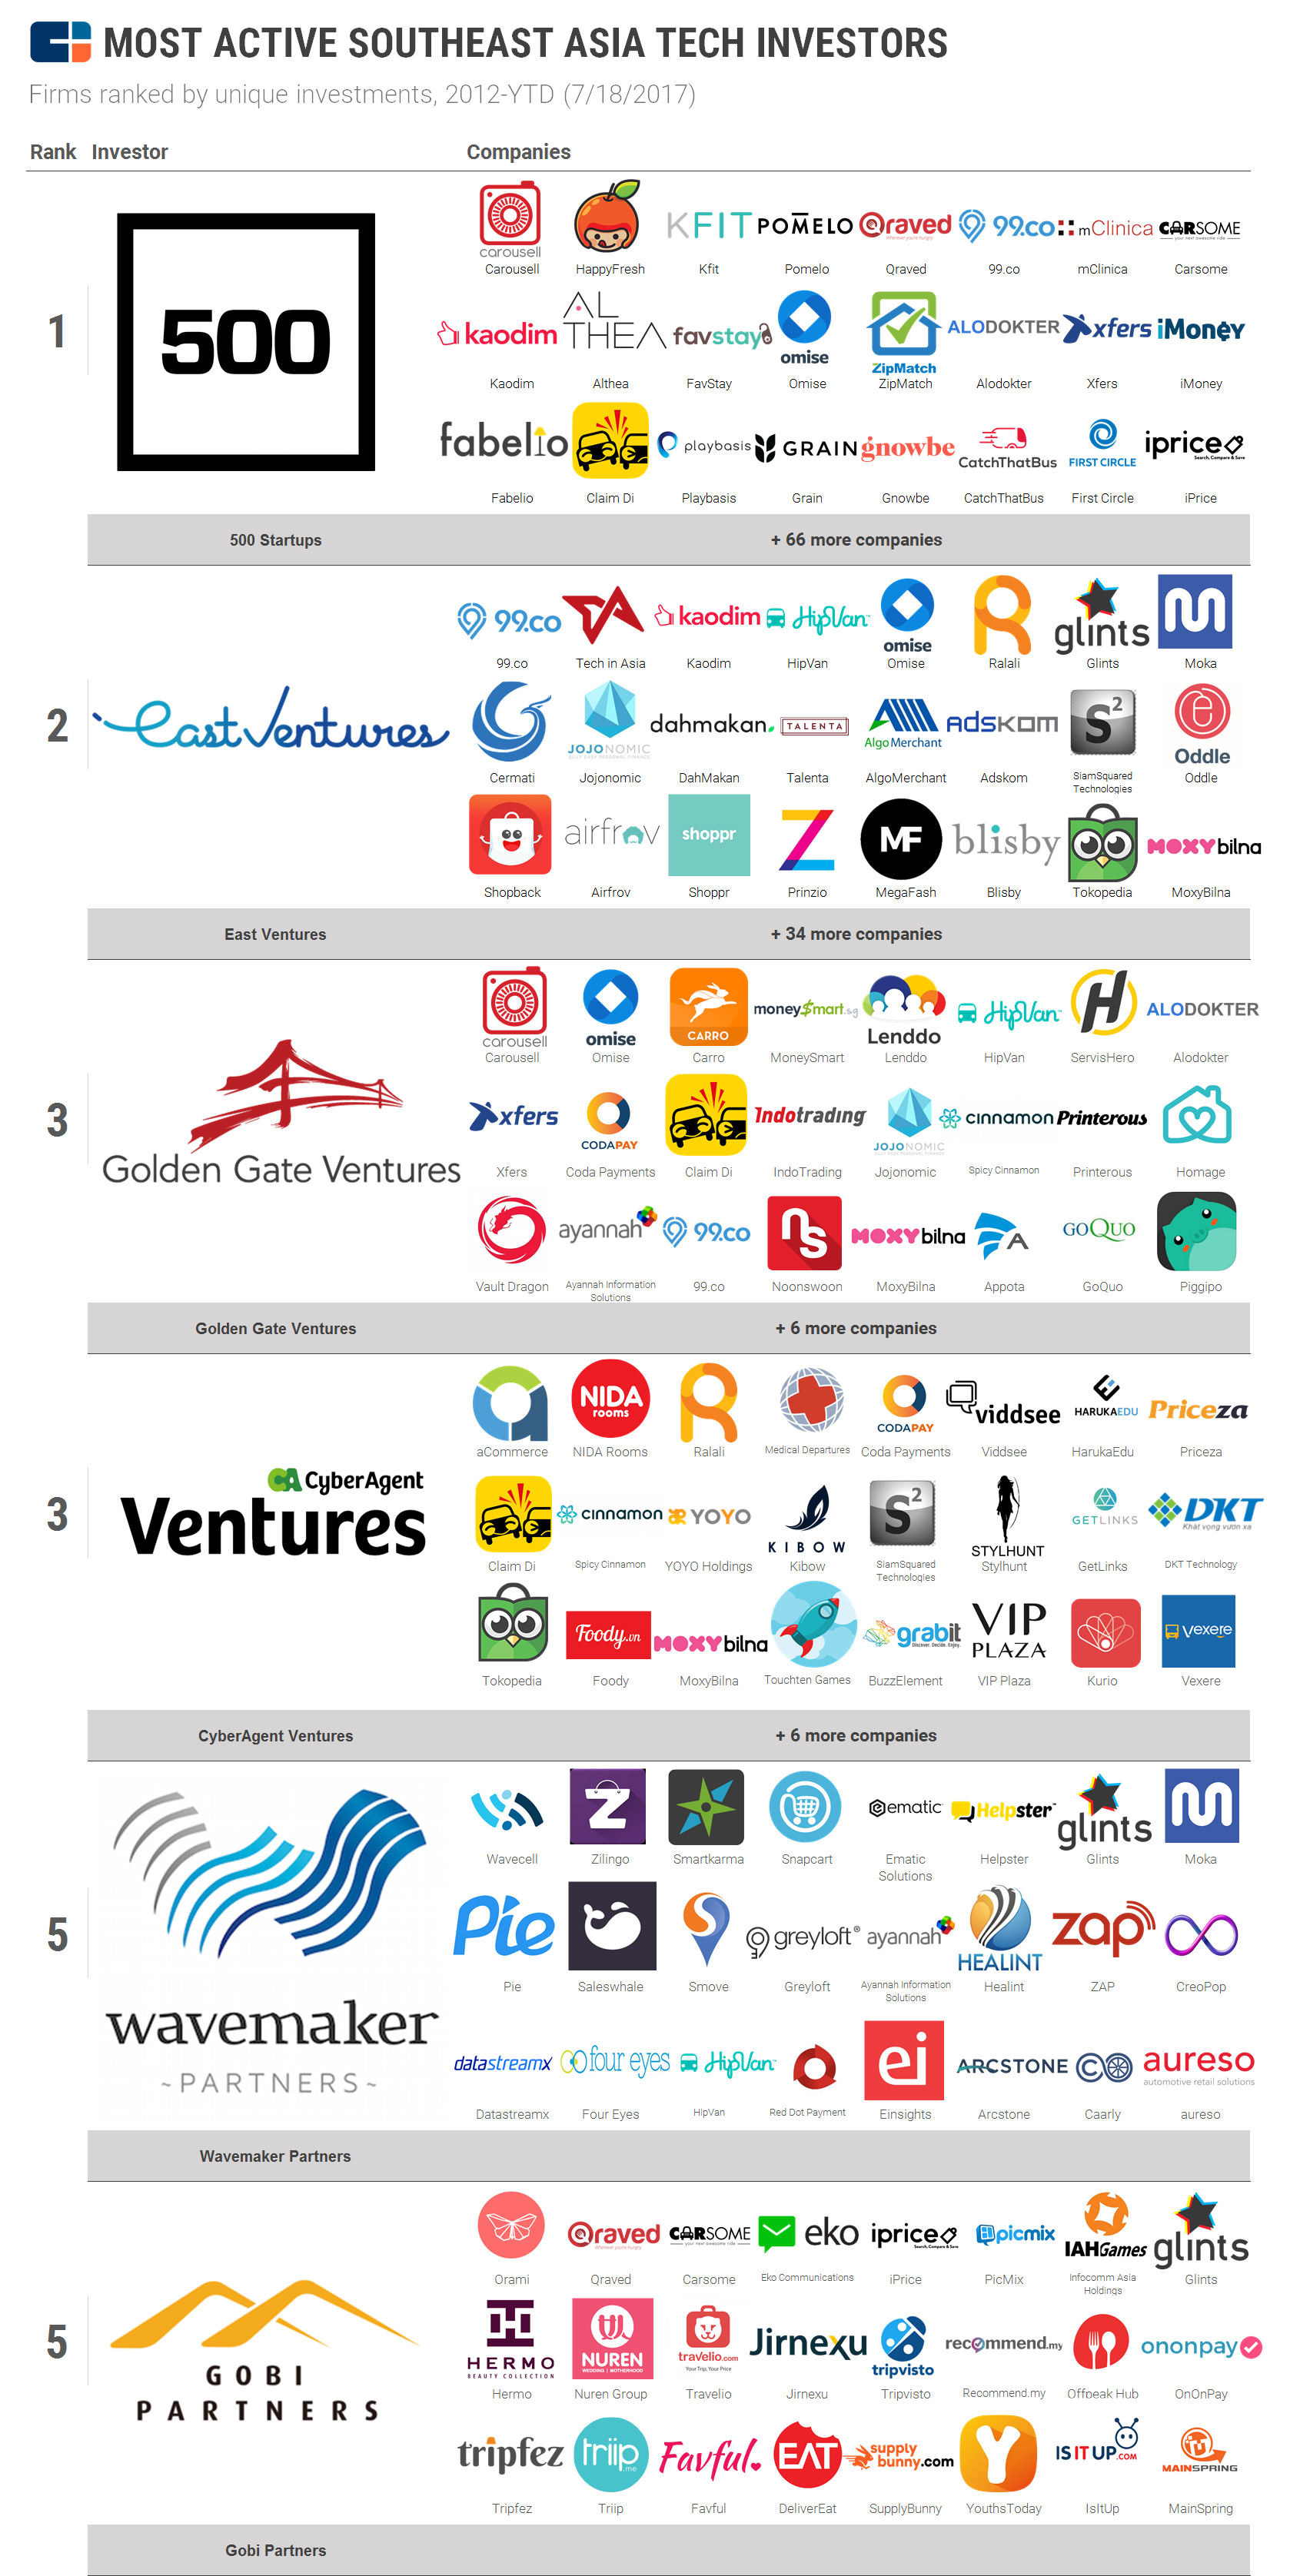 Southeast Asia's Most Active Tech Investors 500 startups